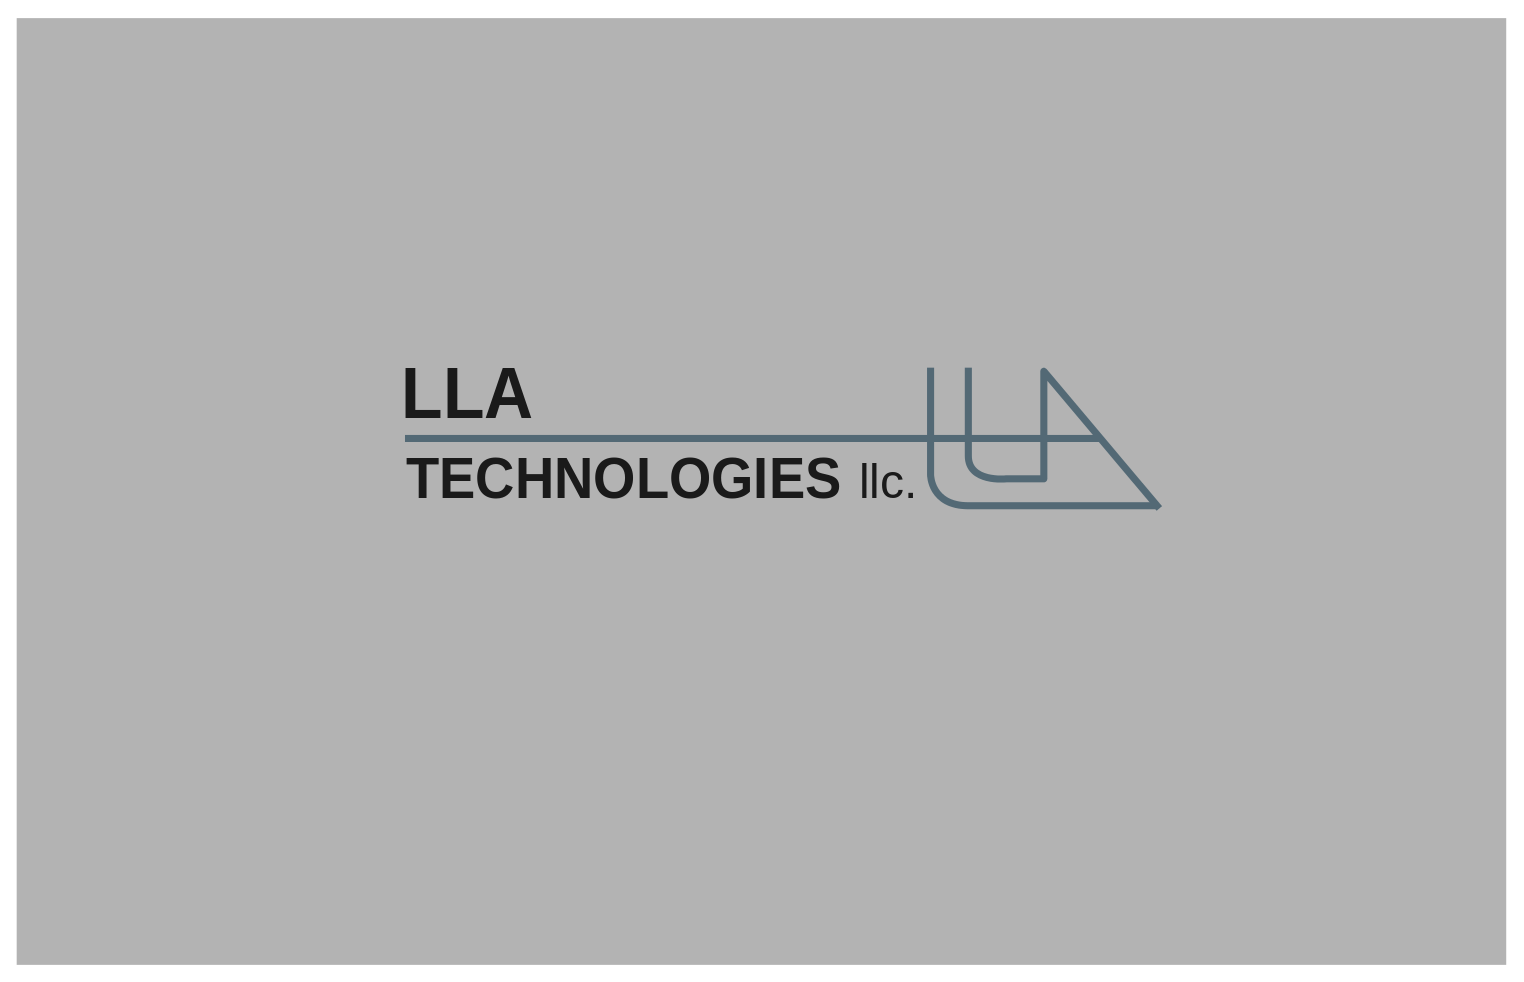 Logo Design by JaroslavProcka - Entry No. 202 in the Logo Design Contest Inspiring Logo Design for LLA Technologies Inc..